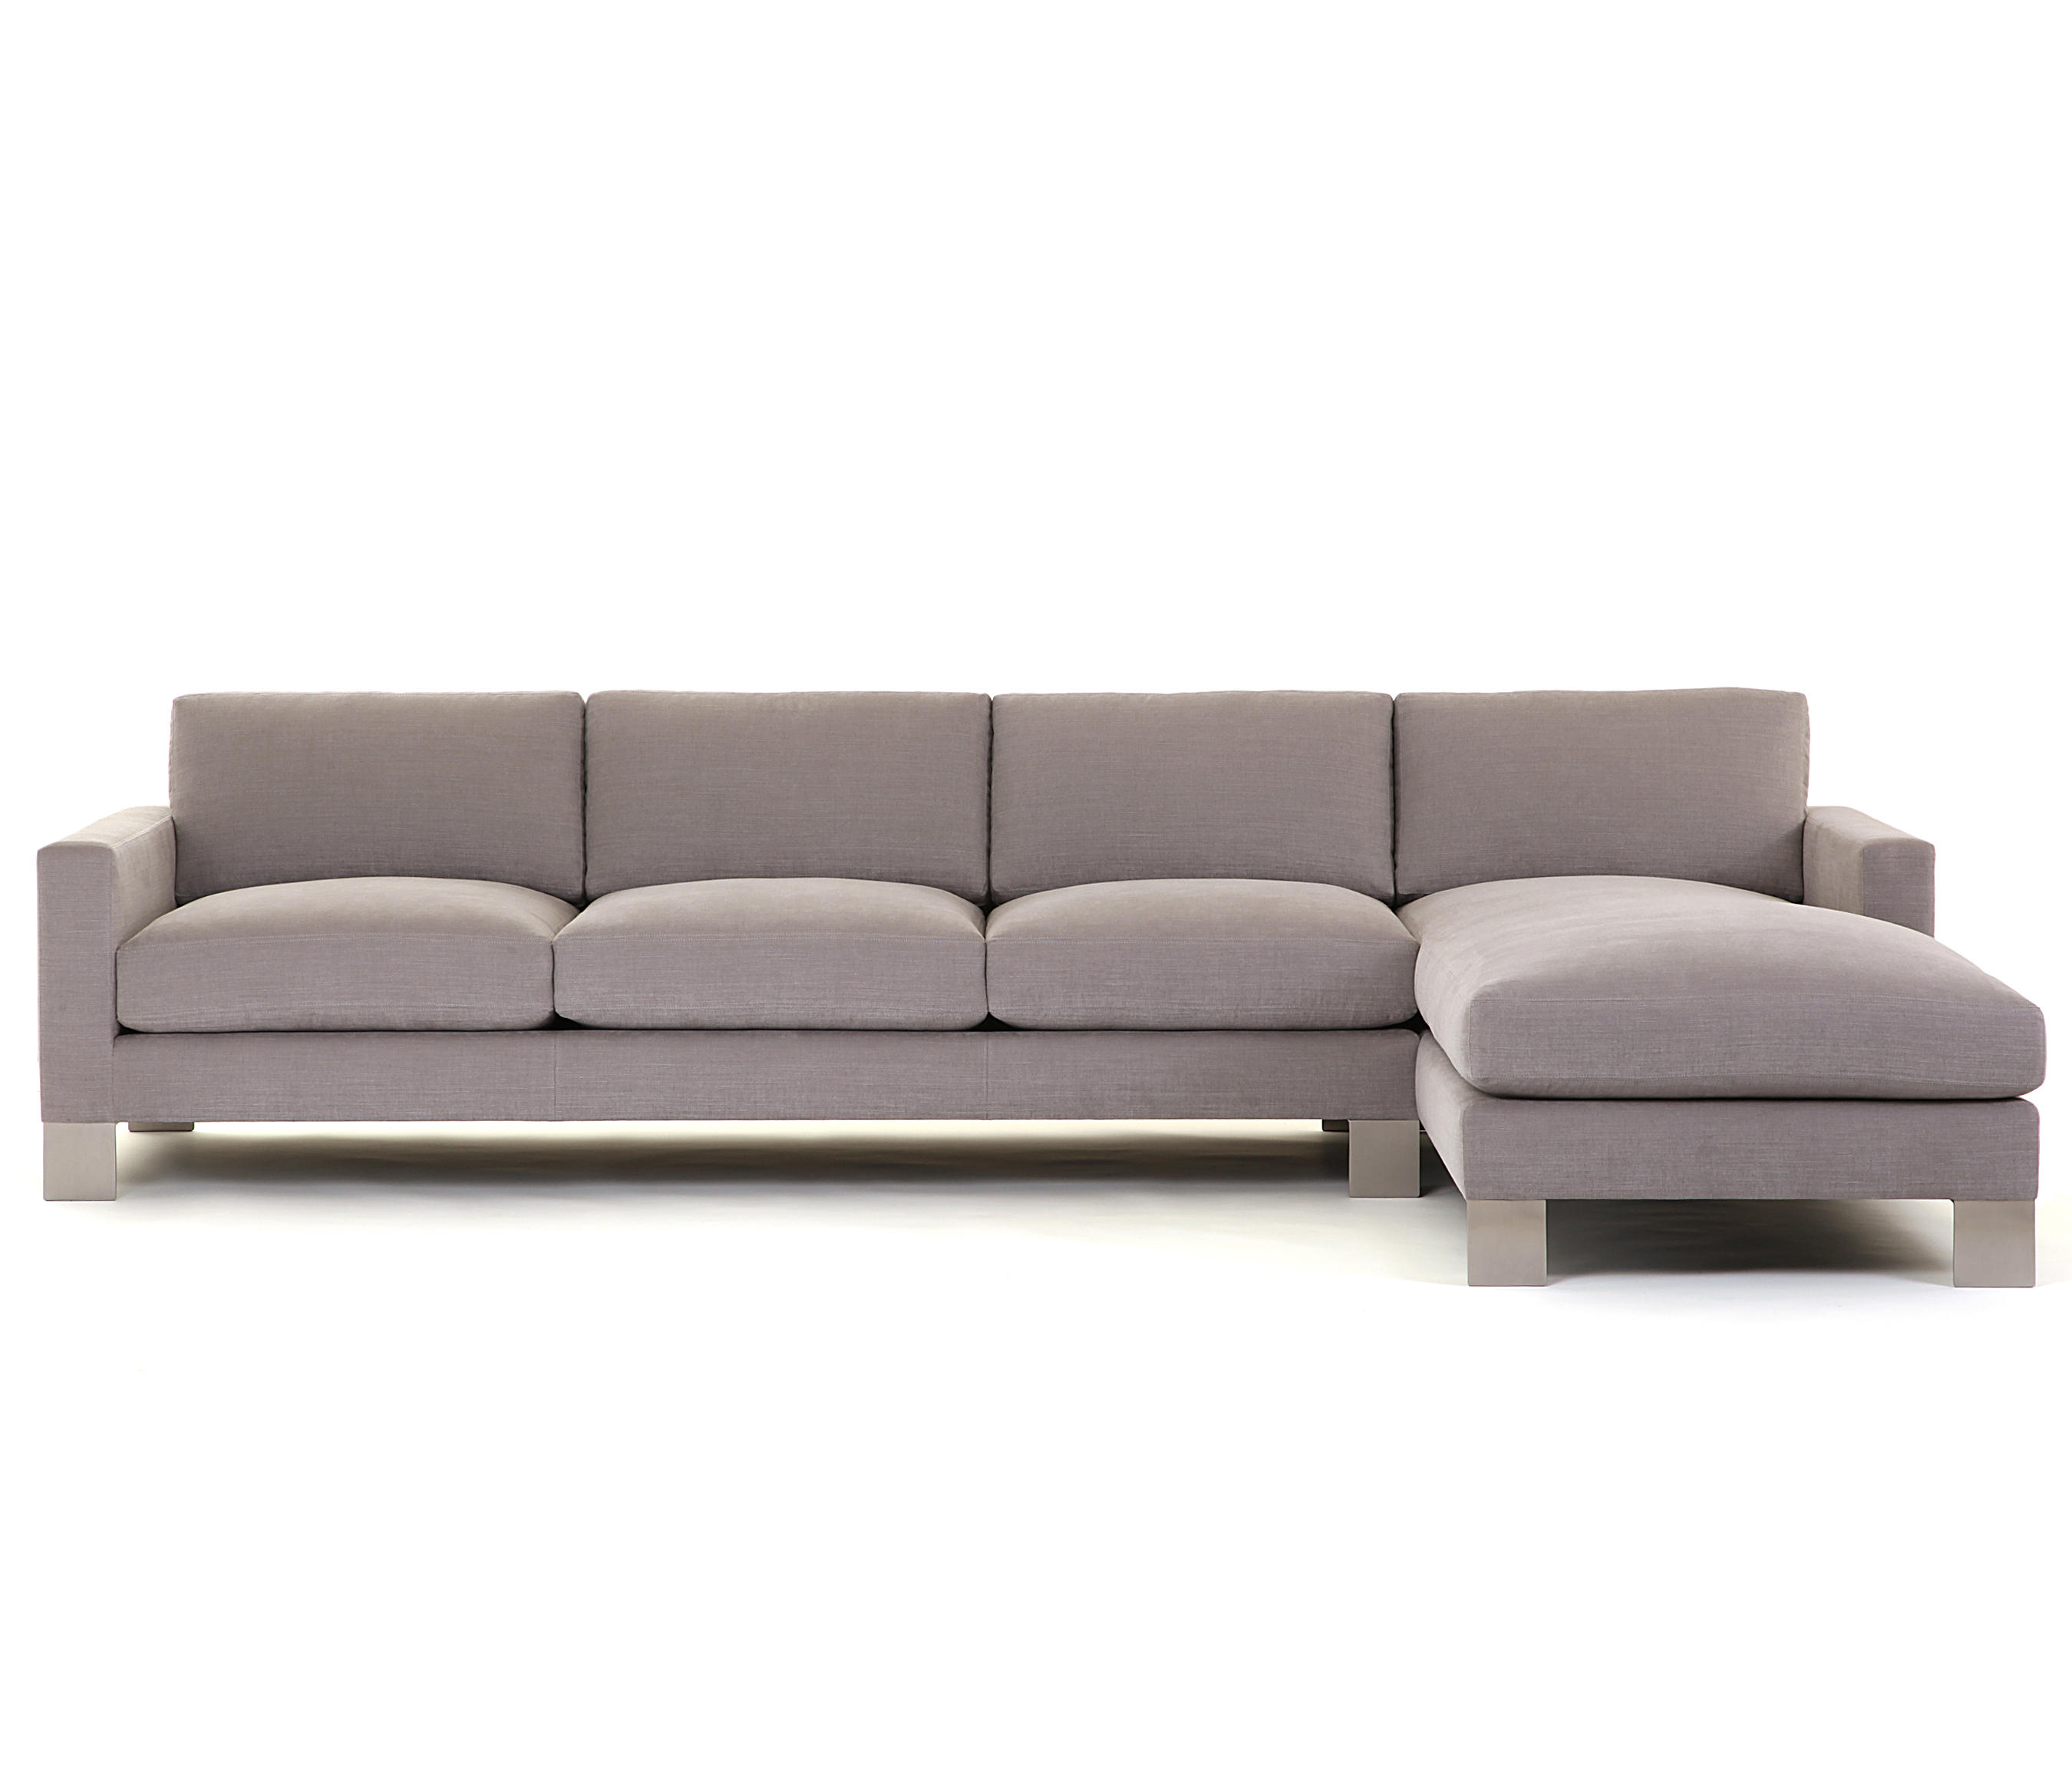 Brilliant Spring Street Sectional Sofas Von Naula Architonic Ncnpc Chair Design For Home Ncnpcorg